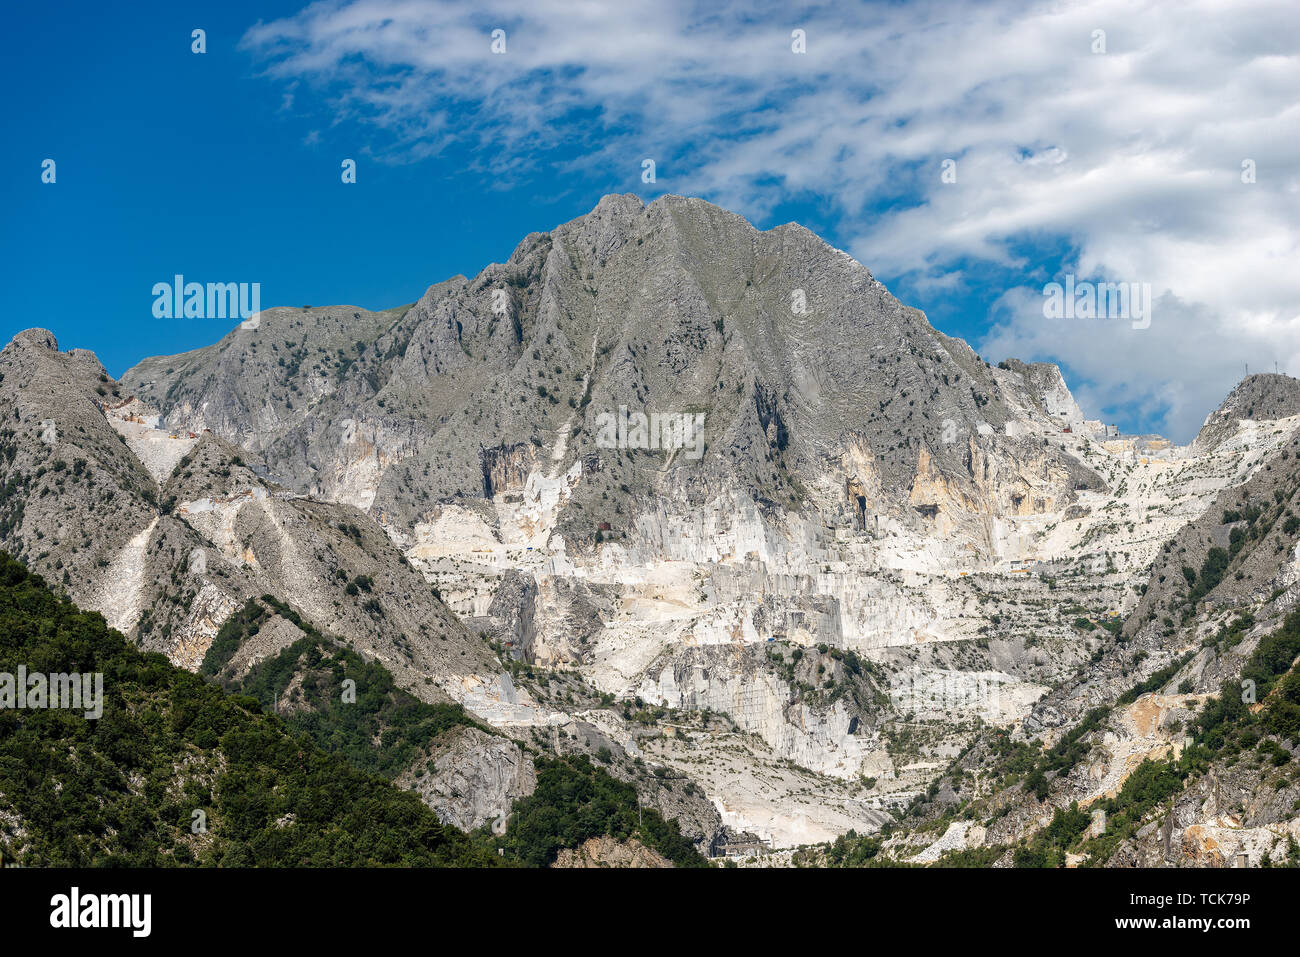 Apuan Alps in Italy with the famous white marble quarries of Carrara, Tuscany, Europe Stock Photo